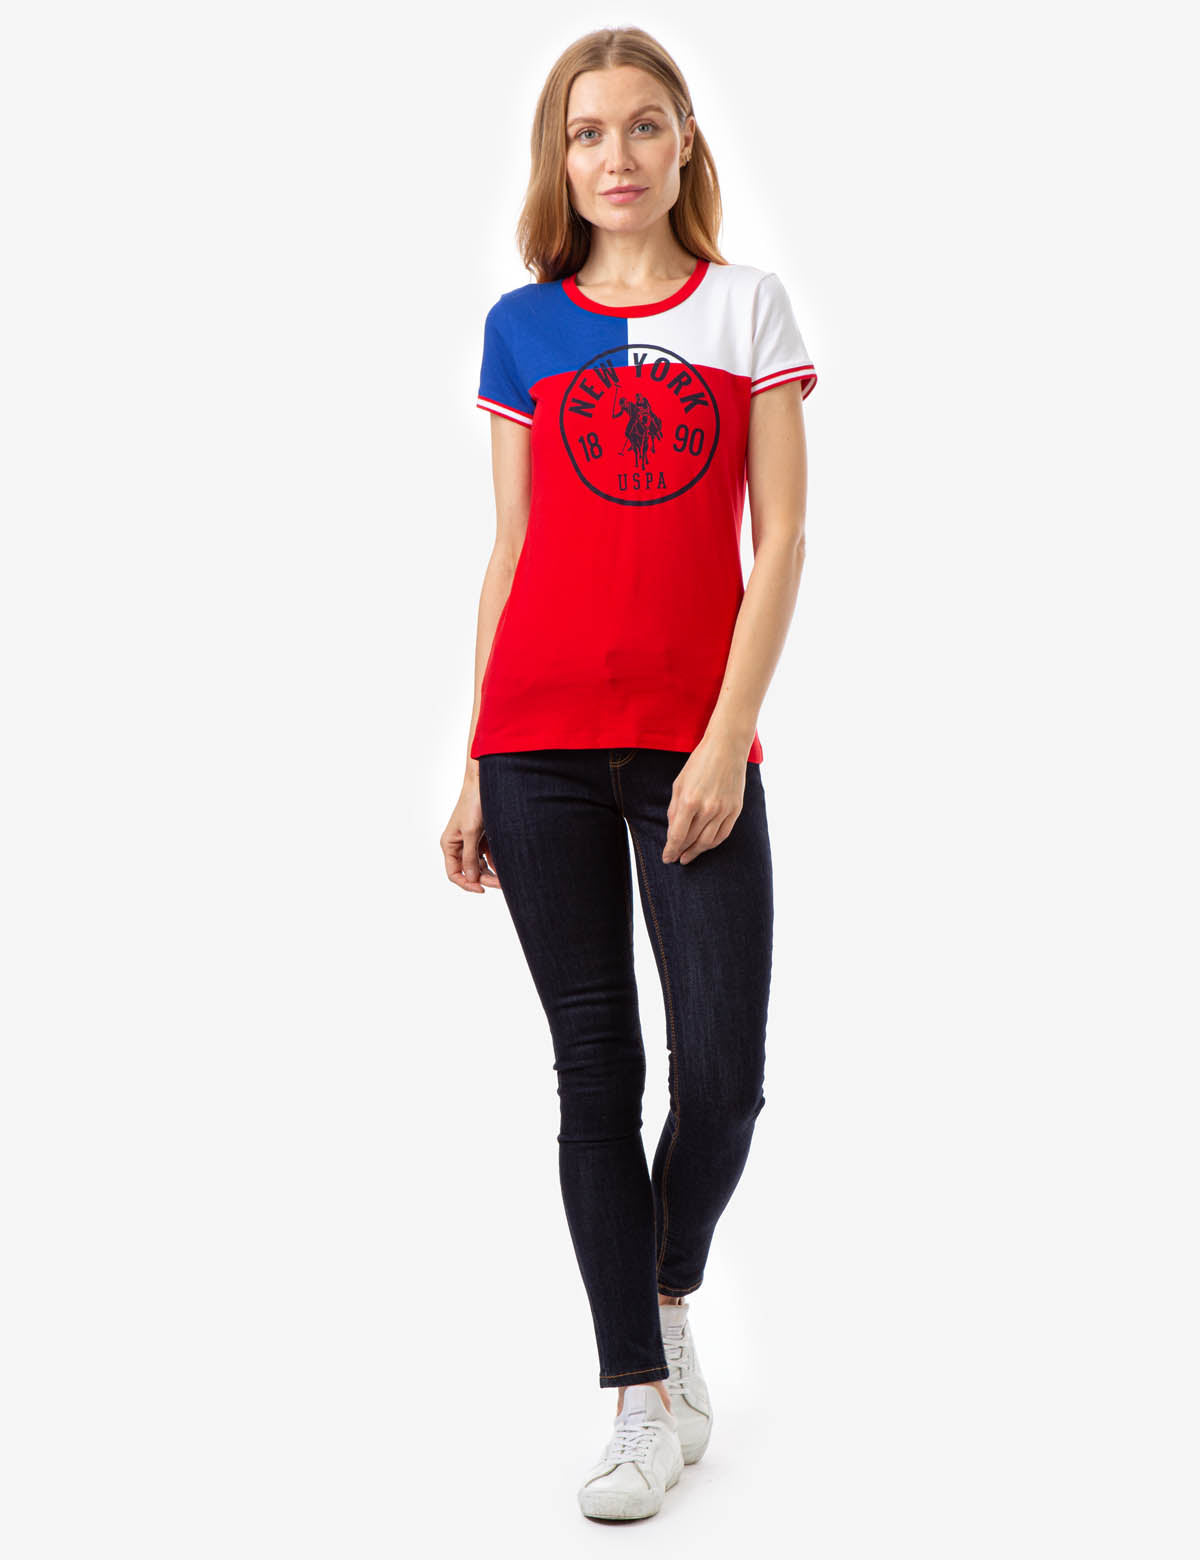 NEW YORK COLORBLOCK T-SHIRT - U.S. Polo Assn.